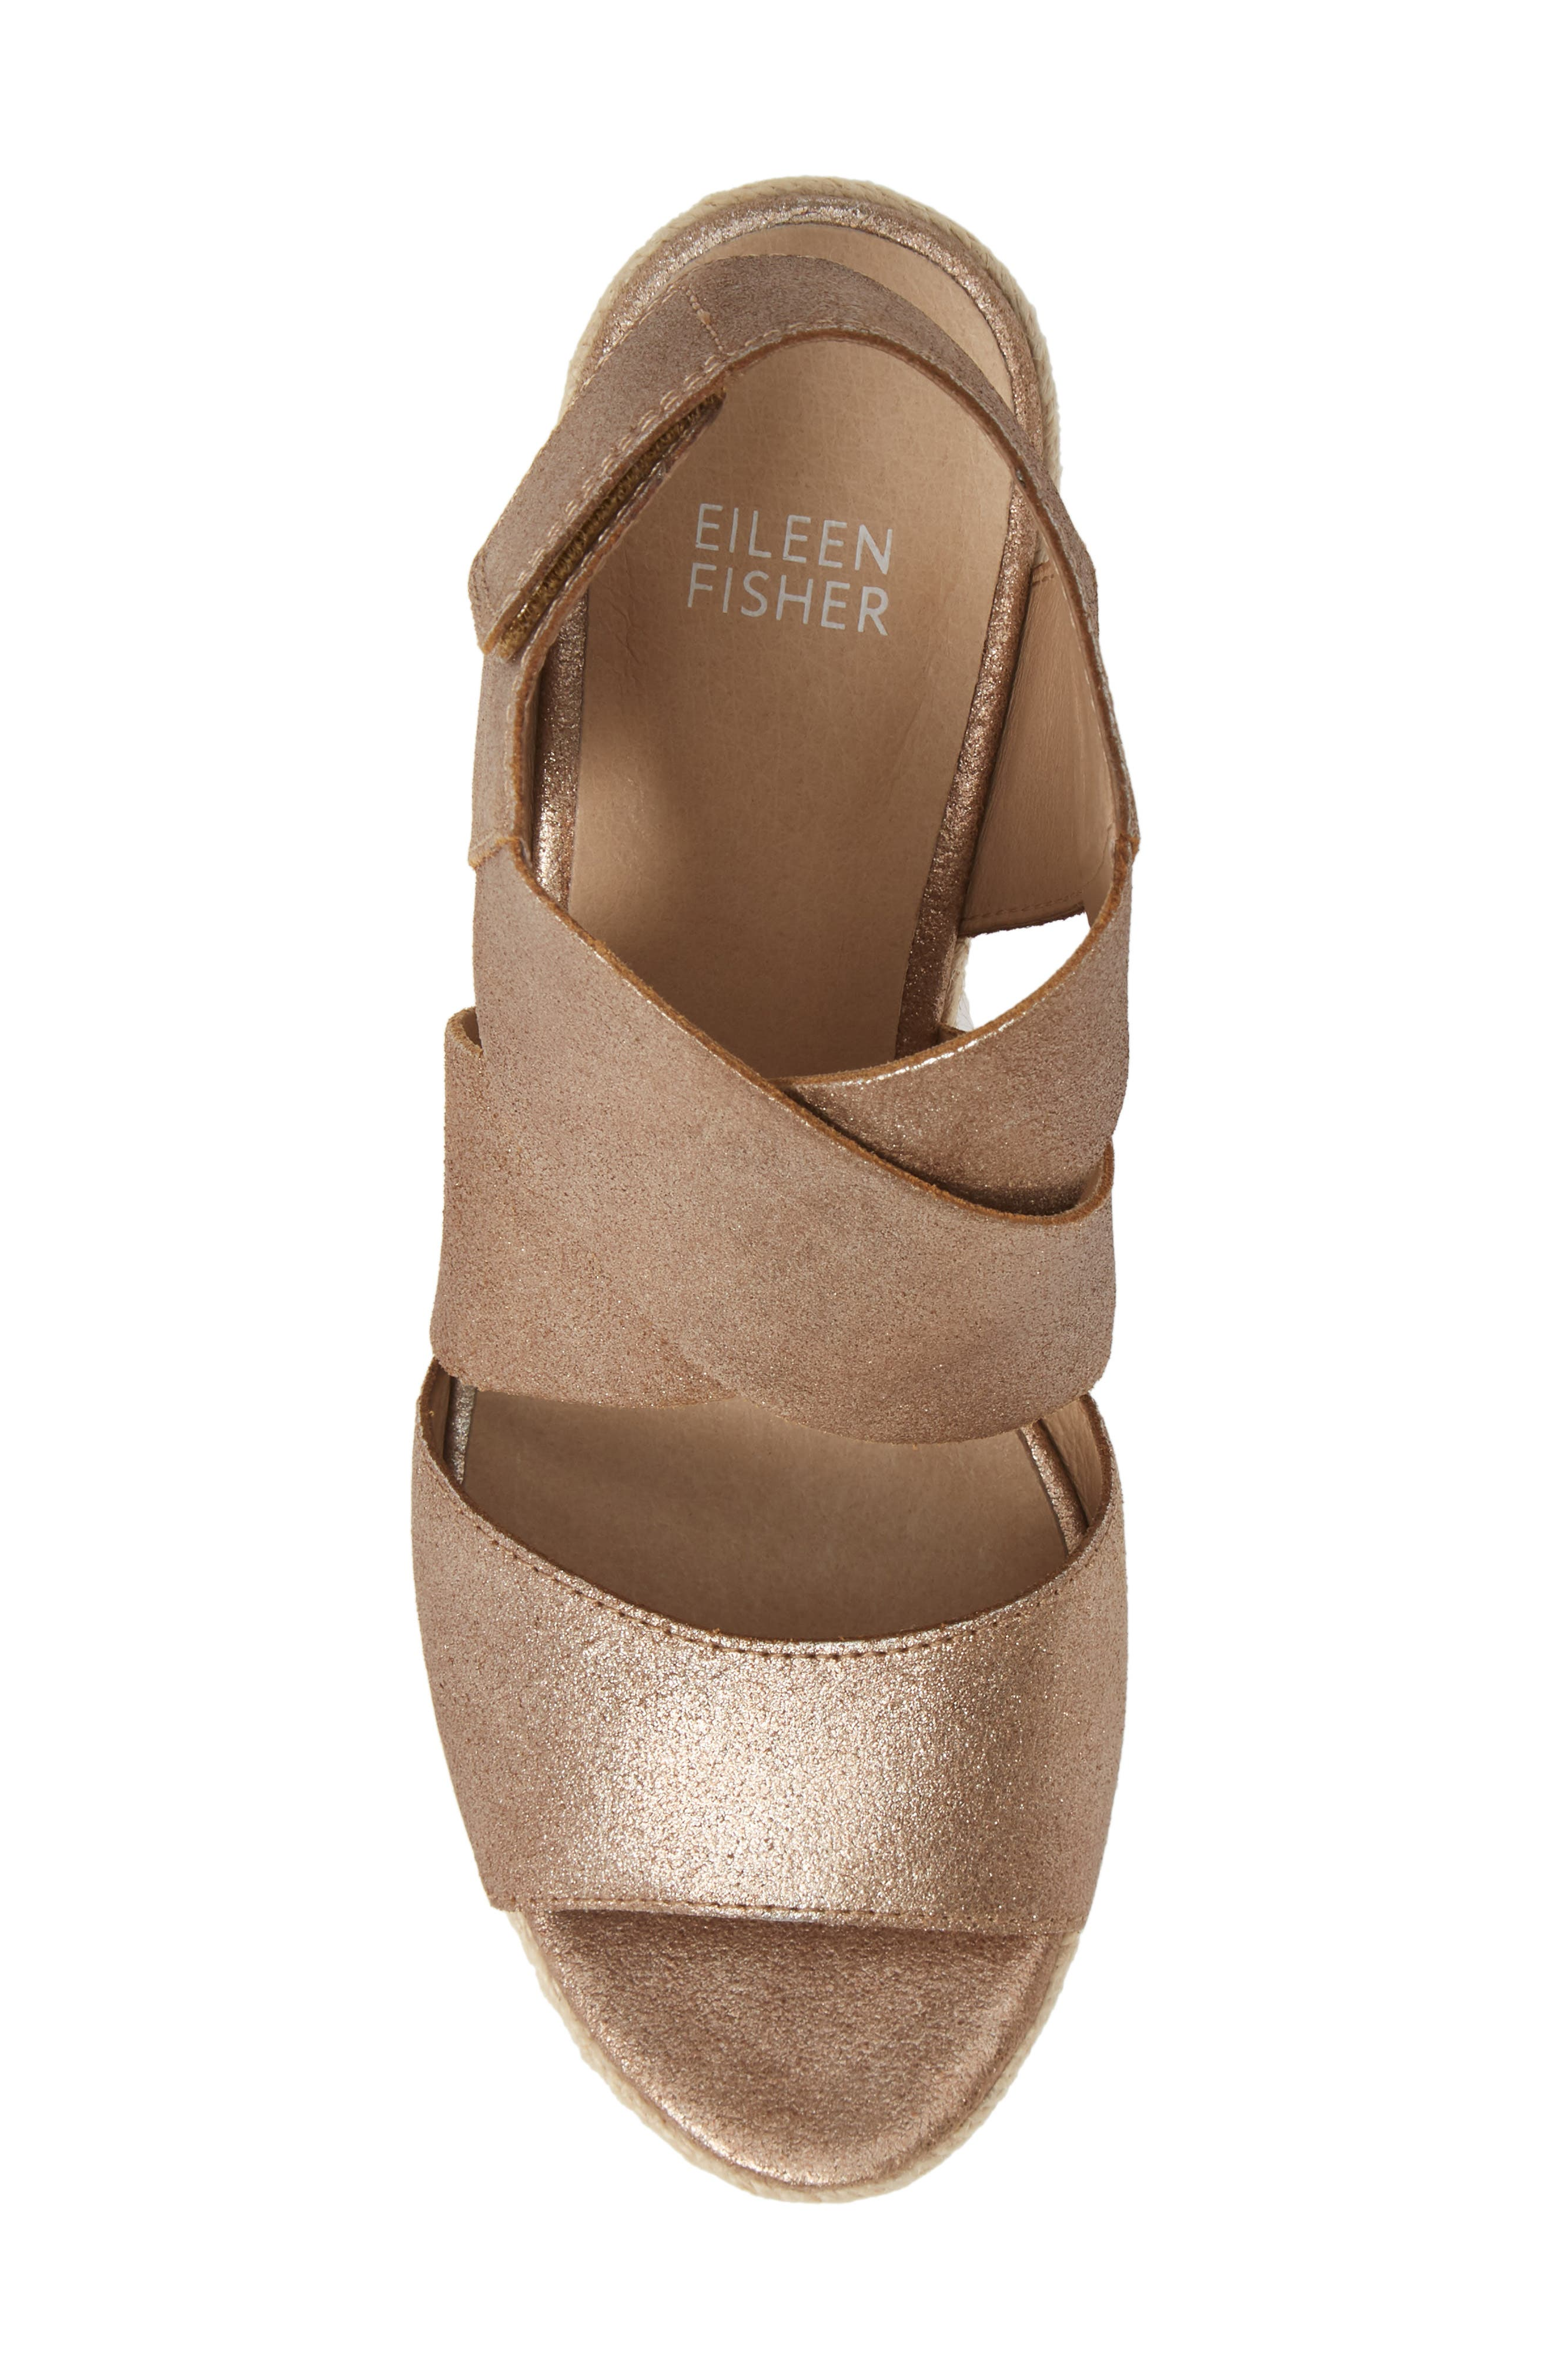 EILEEN FISHER, 'Willow' Espadrille Wedge Sandal, Alternate thumbnail 5, color, BRONZE/ BRONZE LEATHER